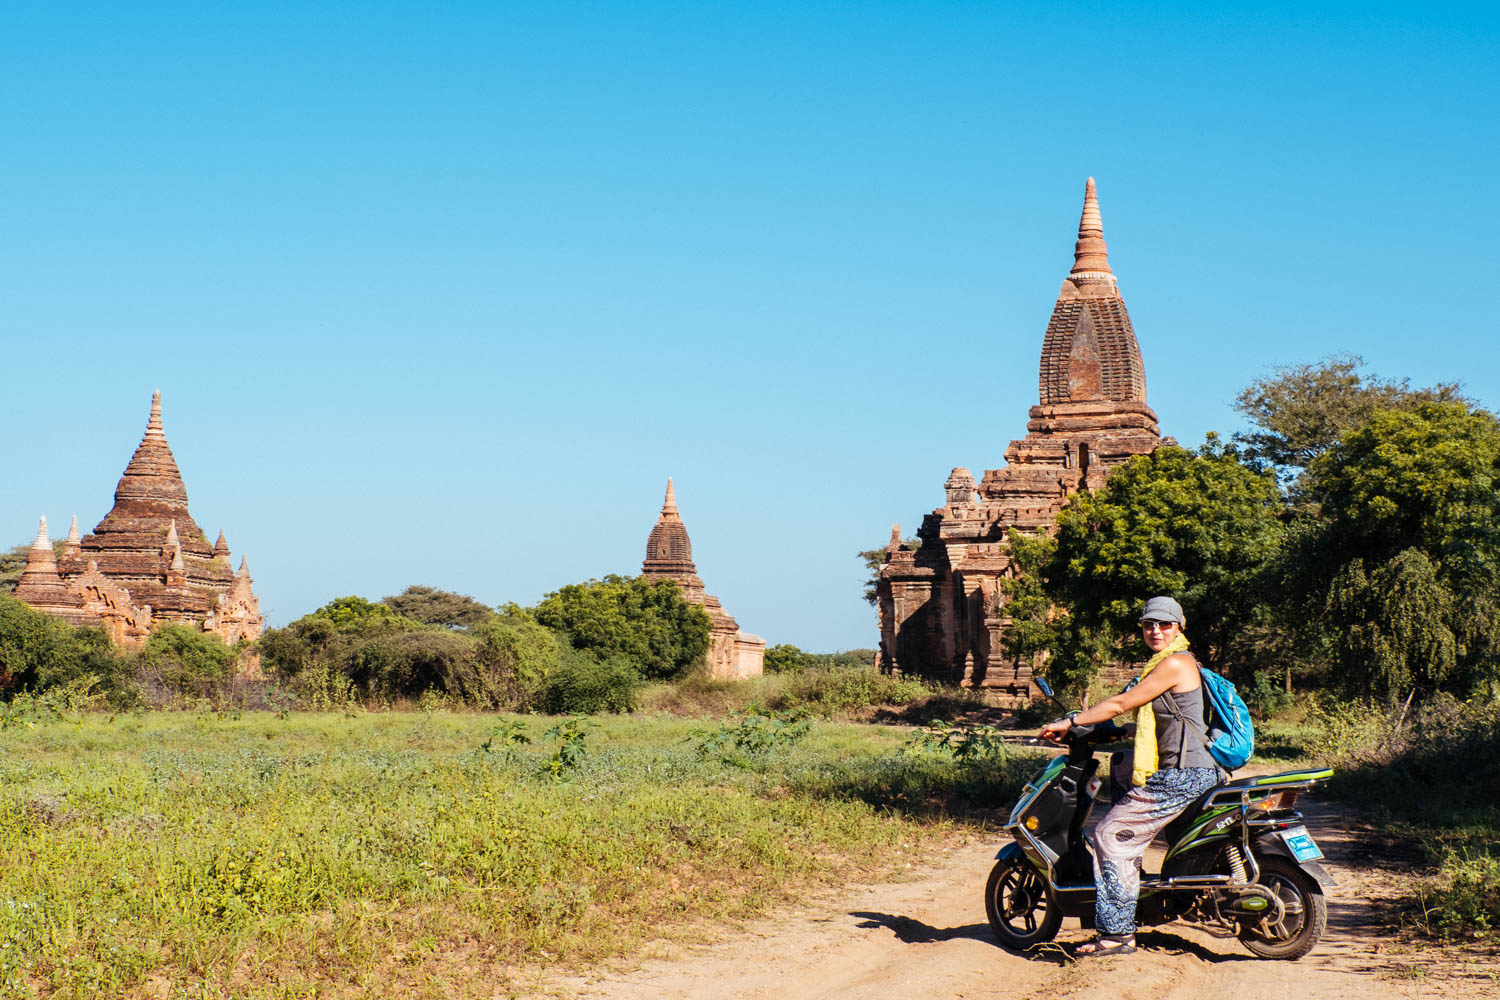 These scooters provided so much freedom to our Bagan experience. Even though these comfortable pants were sold everywhere, I never saw a single local person wear them.